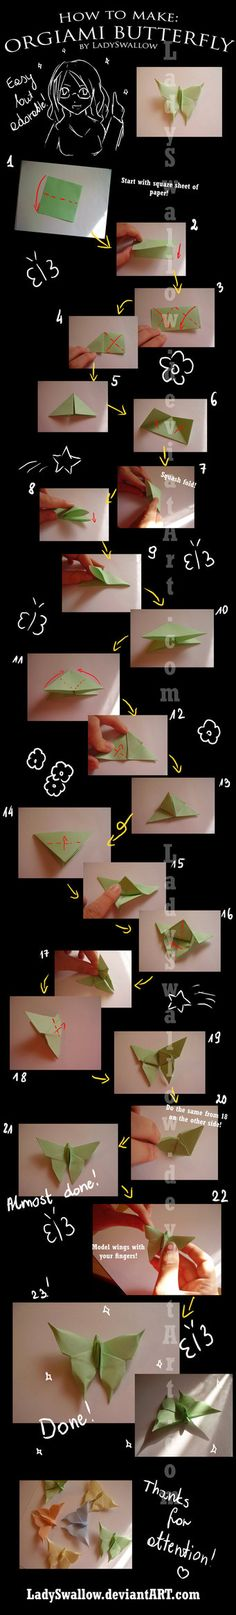 Origami butterfly-step by step by ~LadySwallow on deviantART